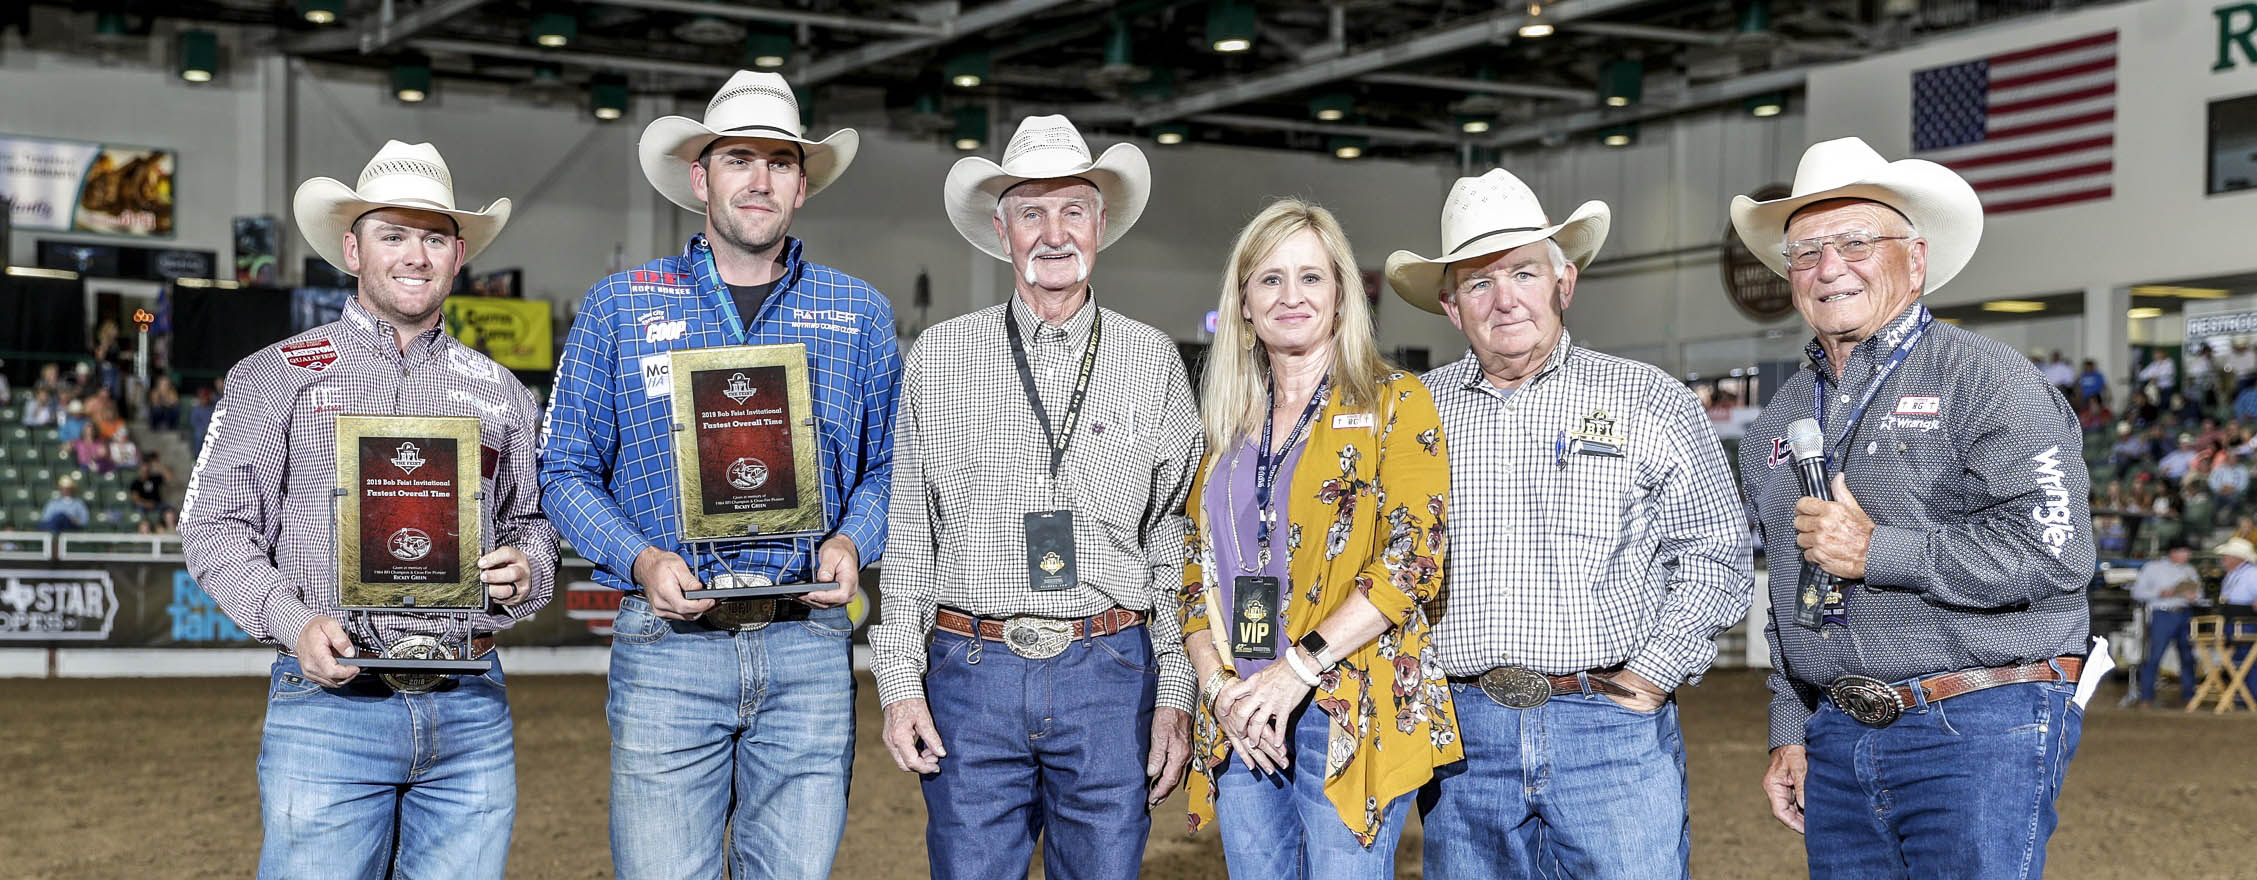 Wade and Saebens gunning for another BFI fastest-time award